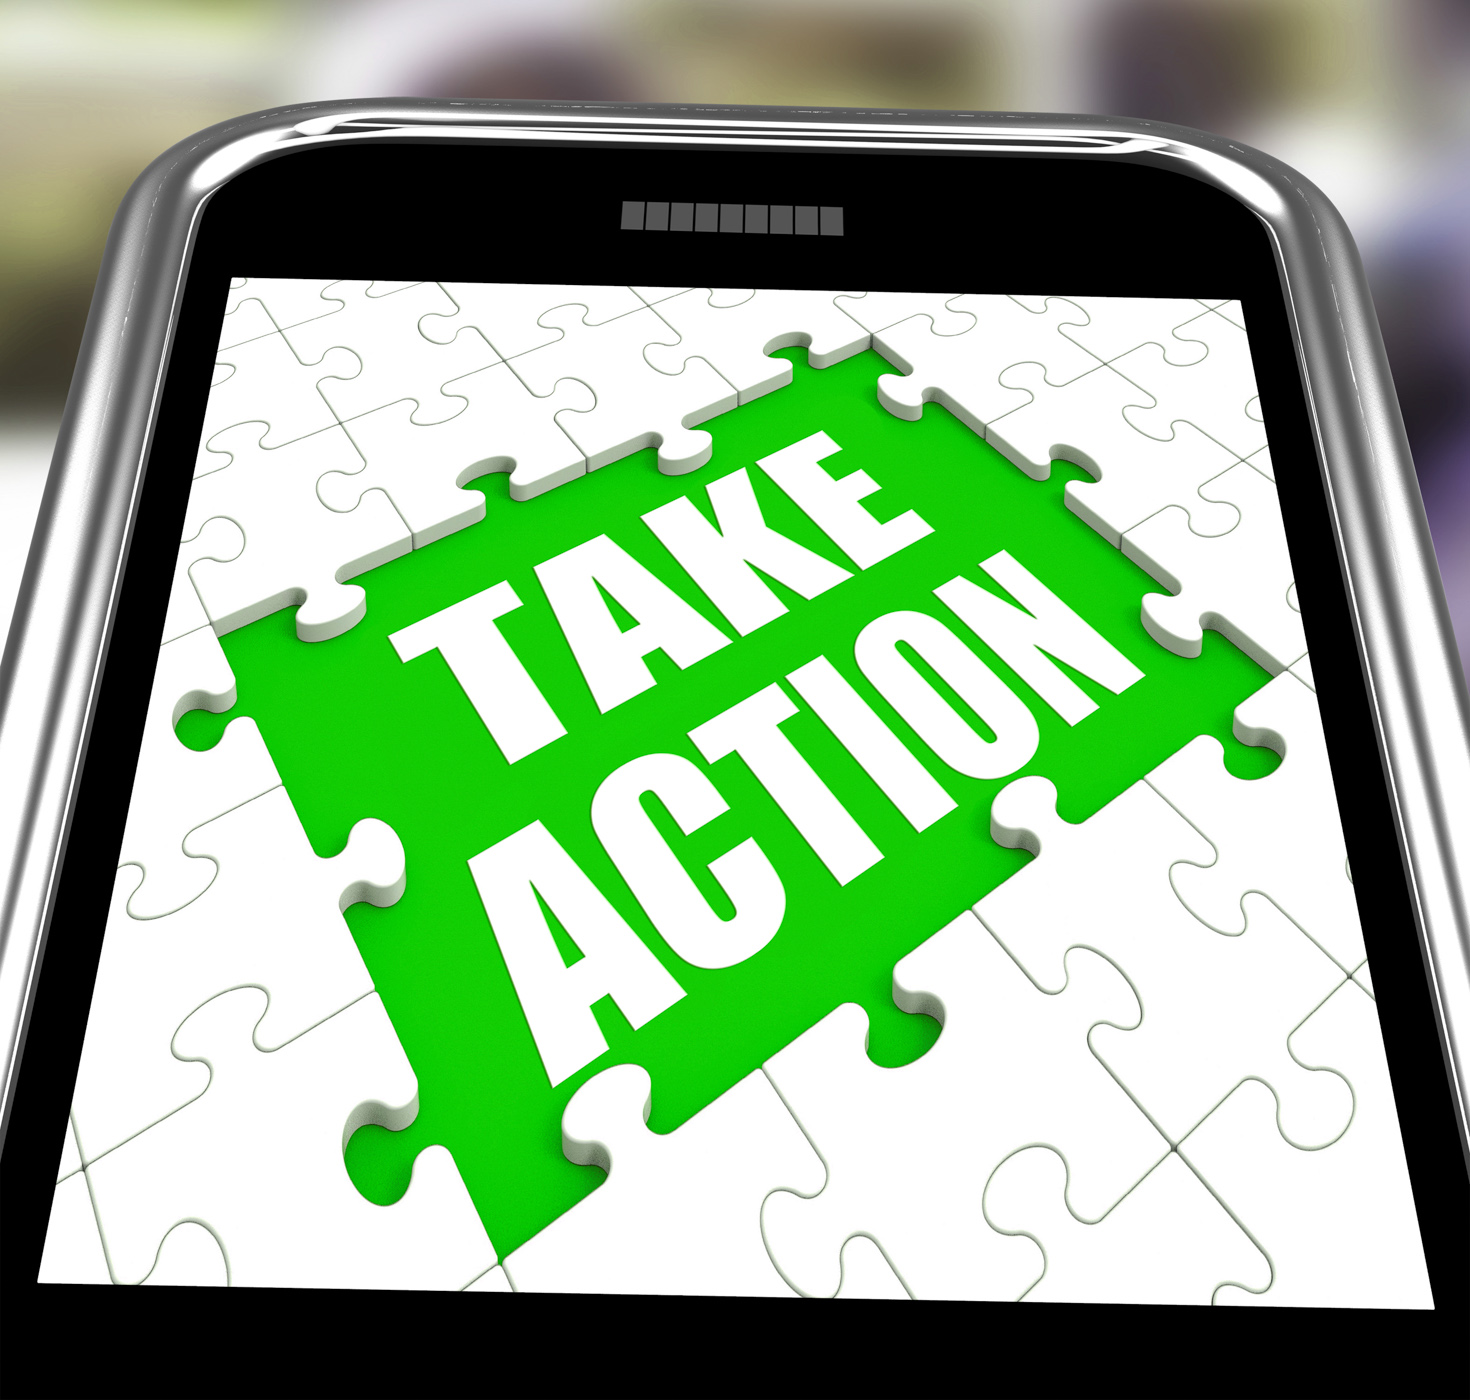 Take action smartphone means urge inspire or motivate photo